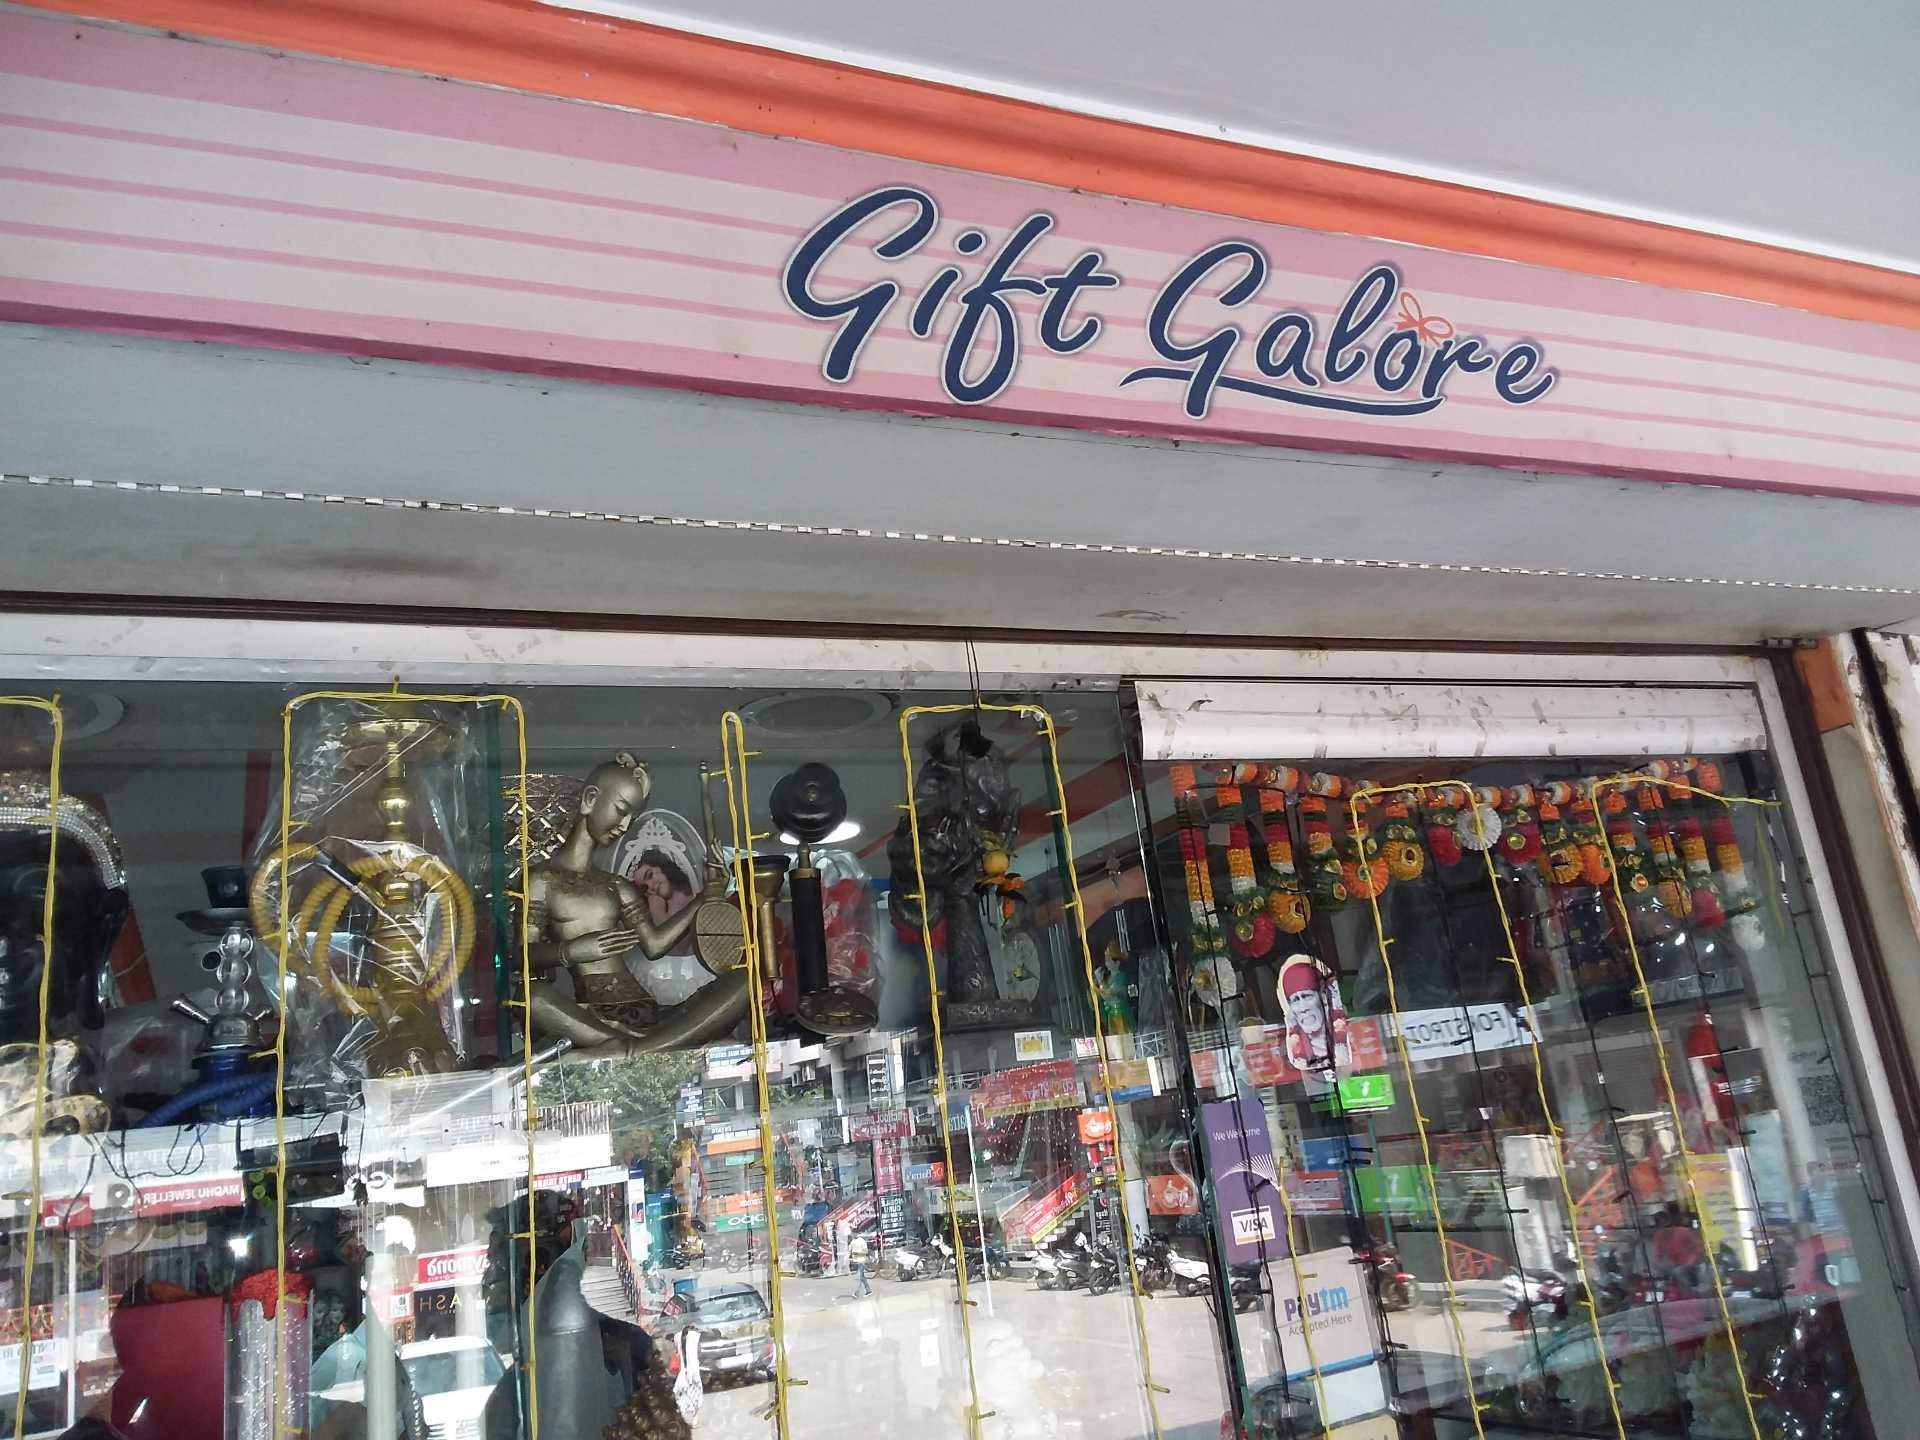 Gift Galore Gomti Nagar   Gift Shops in Lucknow LUCKNOW   Justdial 1920x1440